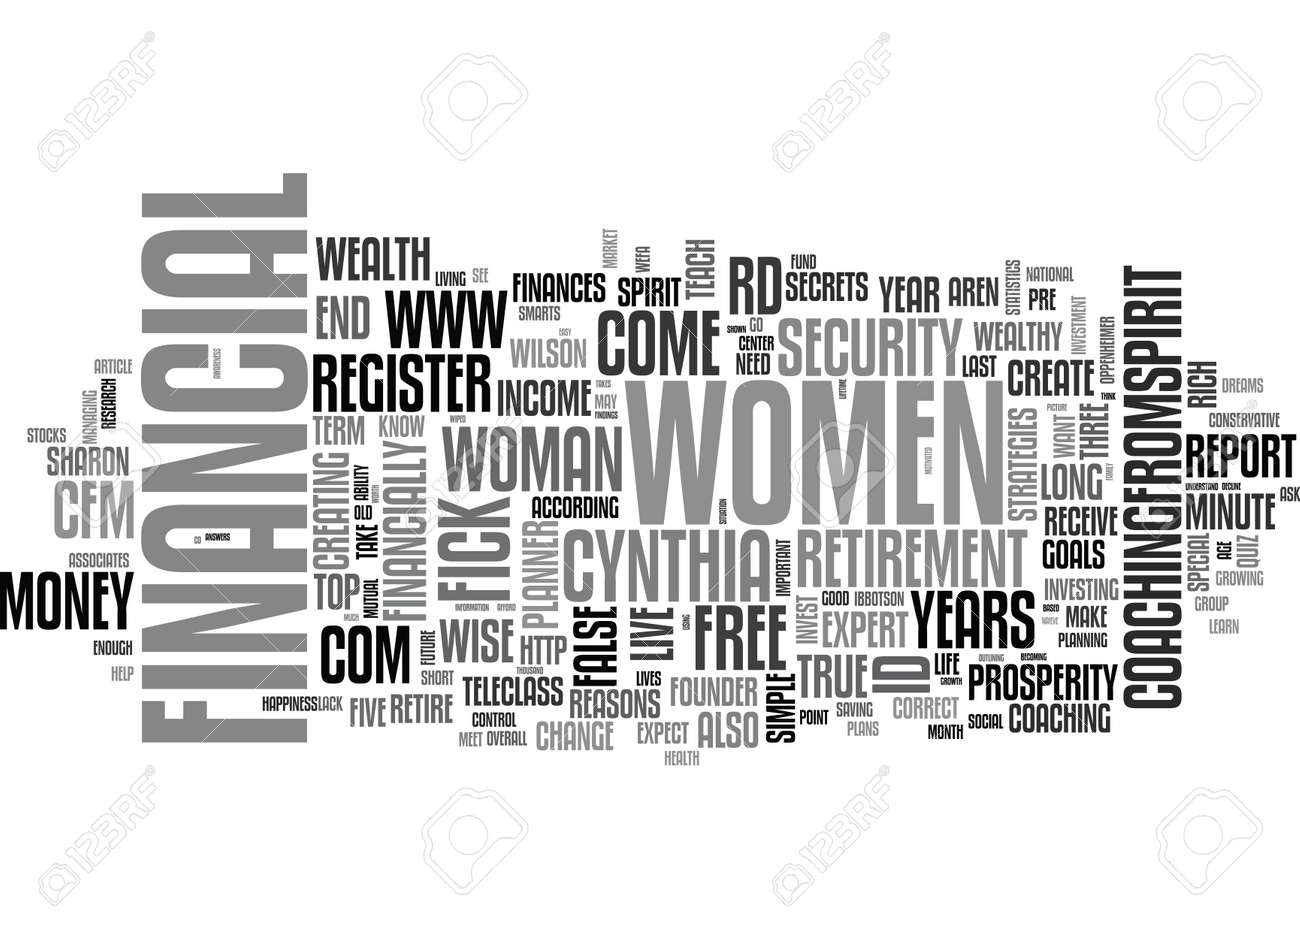 WISE WOMEN MONEY QUIZ HOW MONEY WISE ARE YOU TEXT WORD CLOUD CONCEPT - 79576959